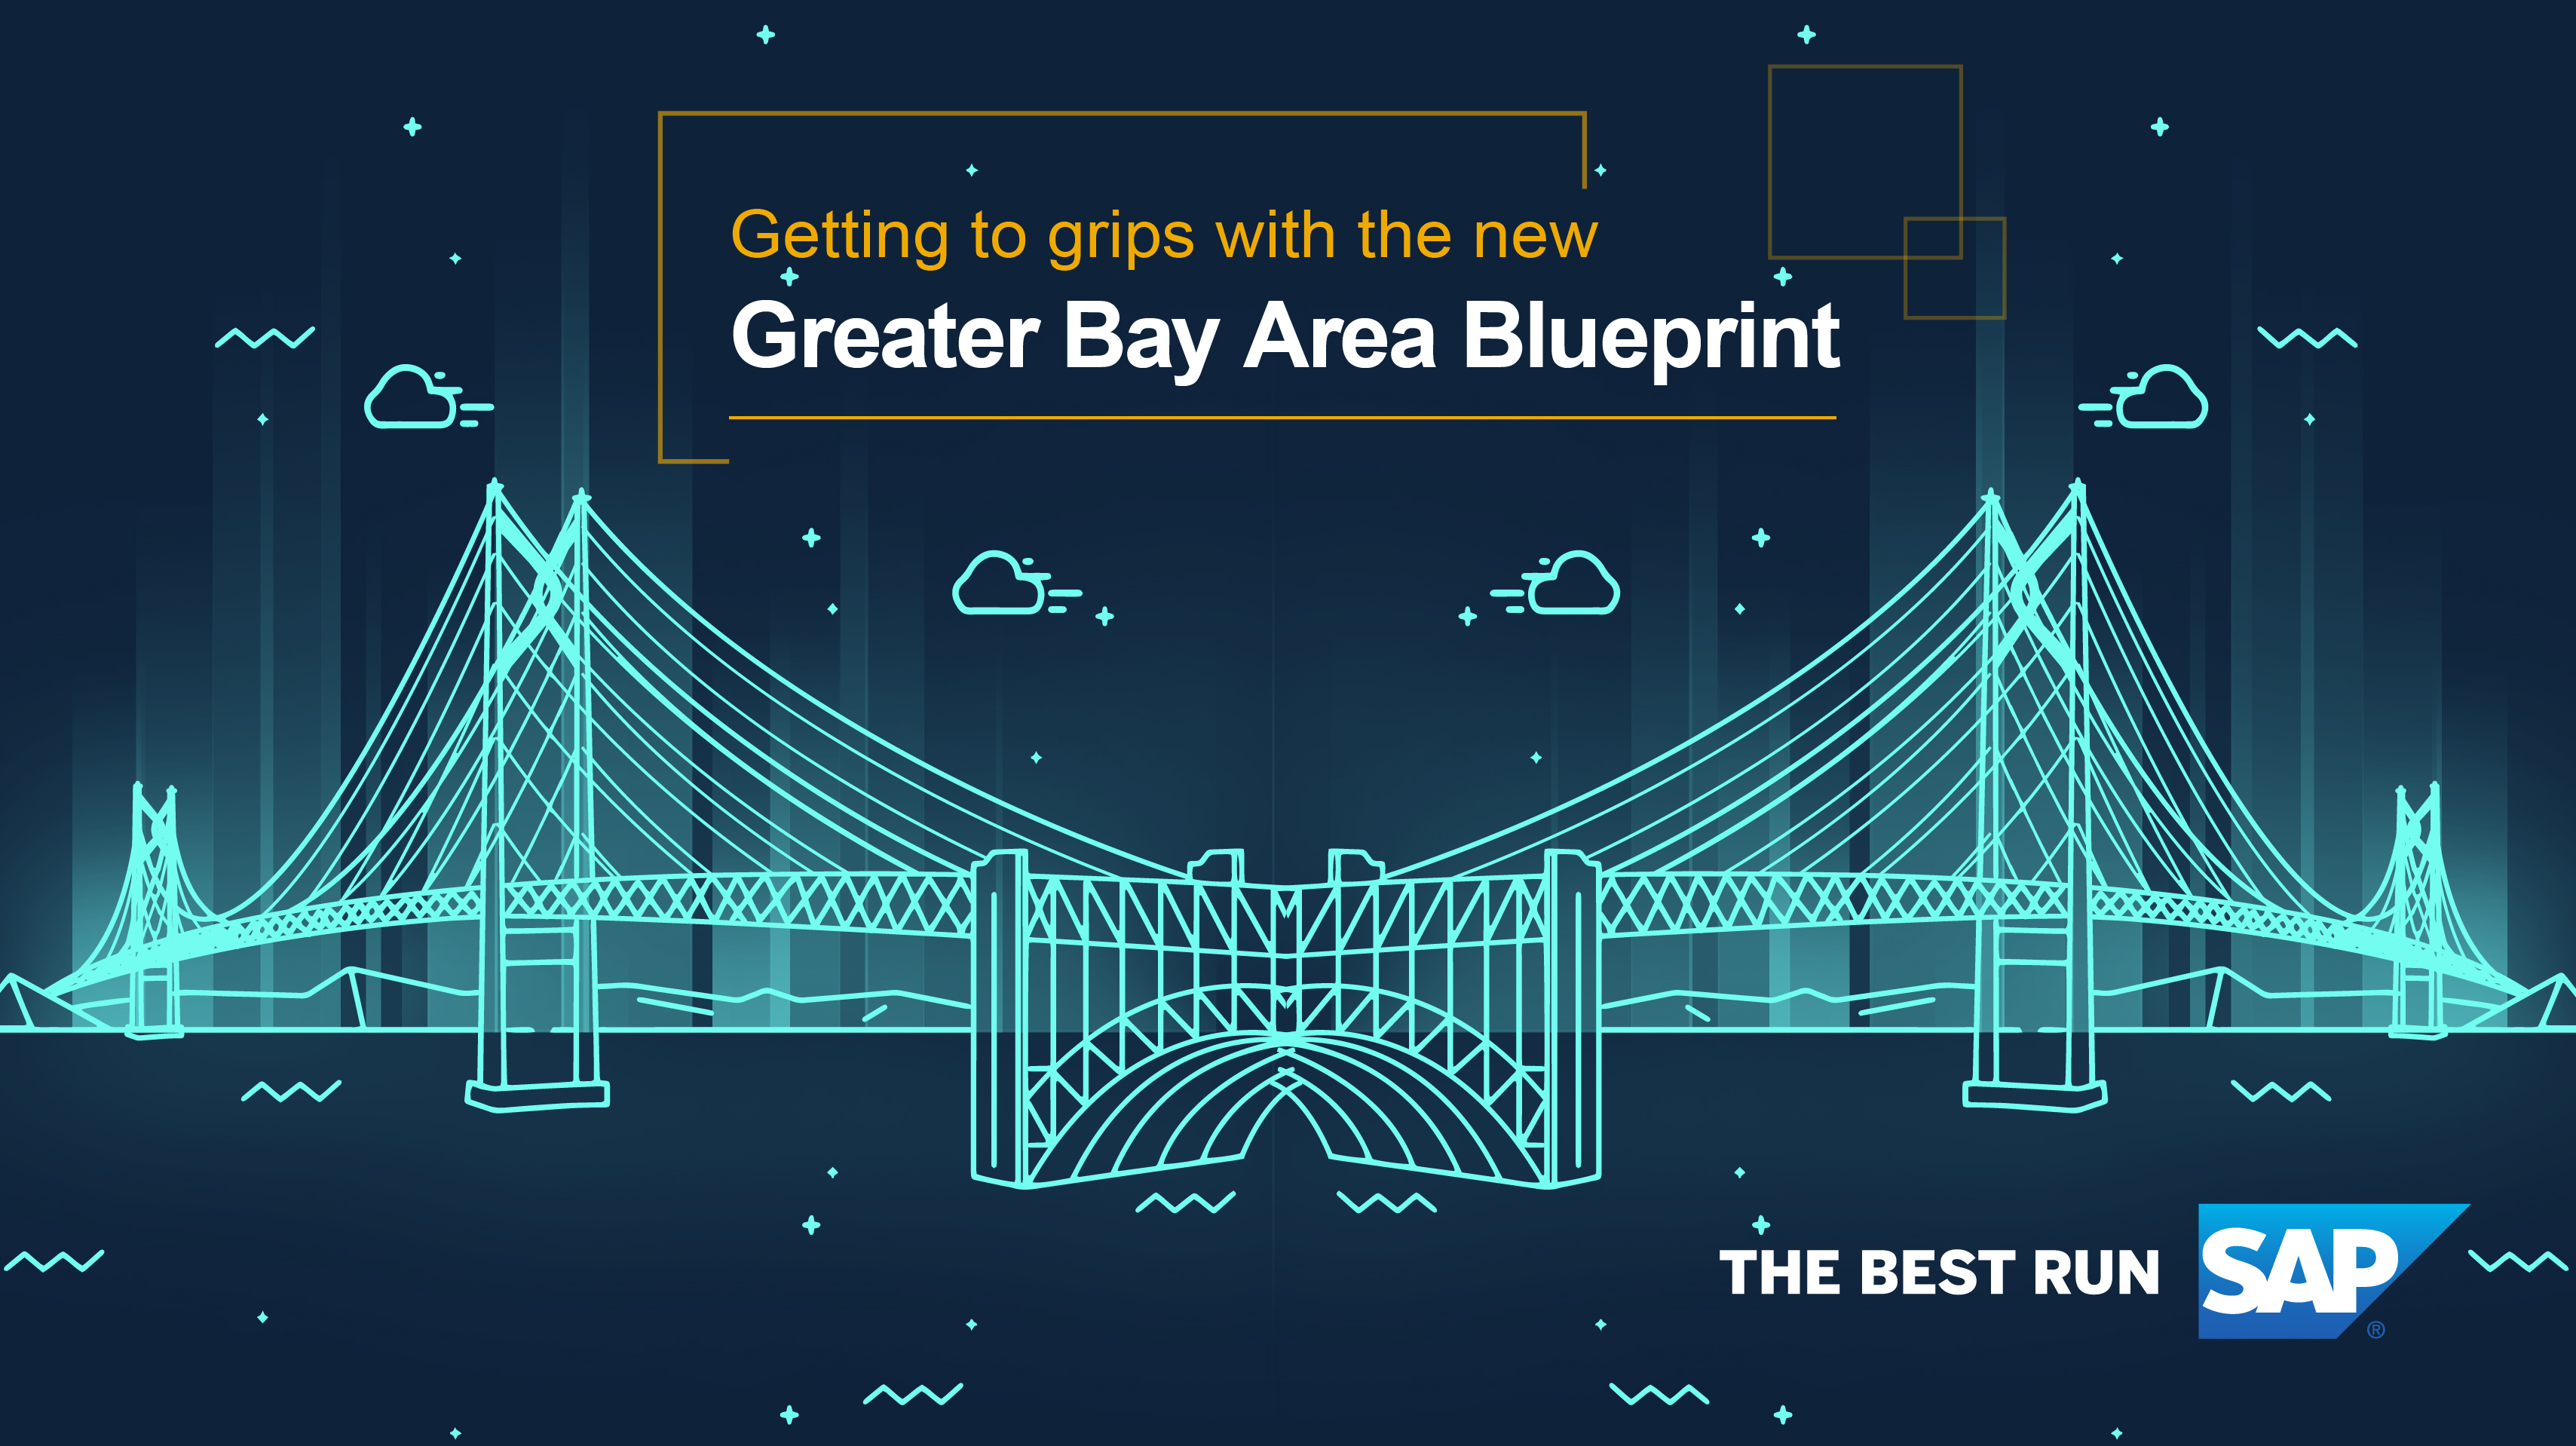 Getting To Grips With The New Greater Bay Area Blueprint